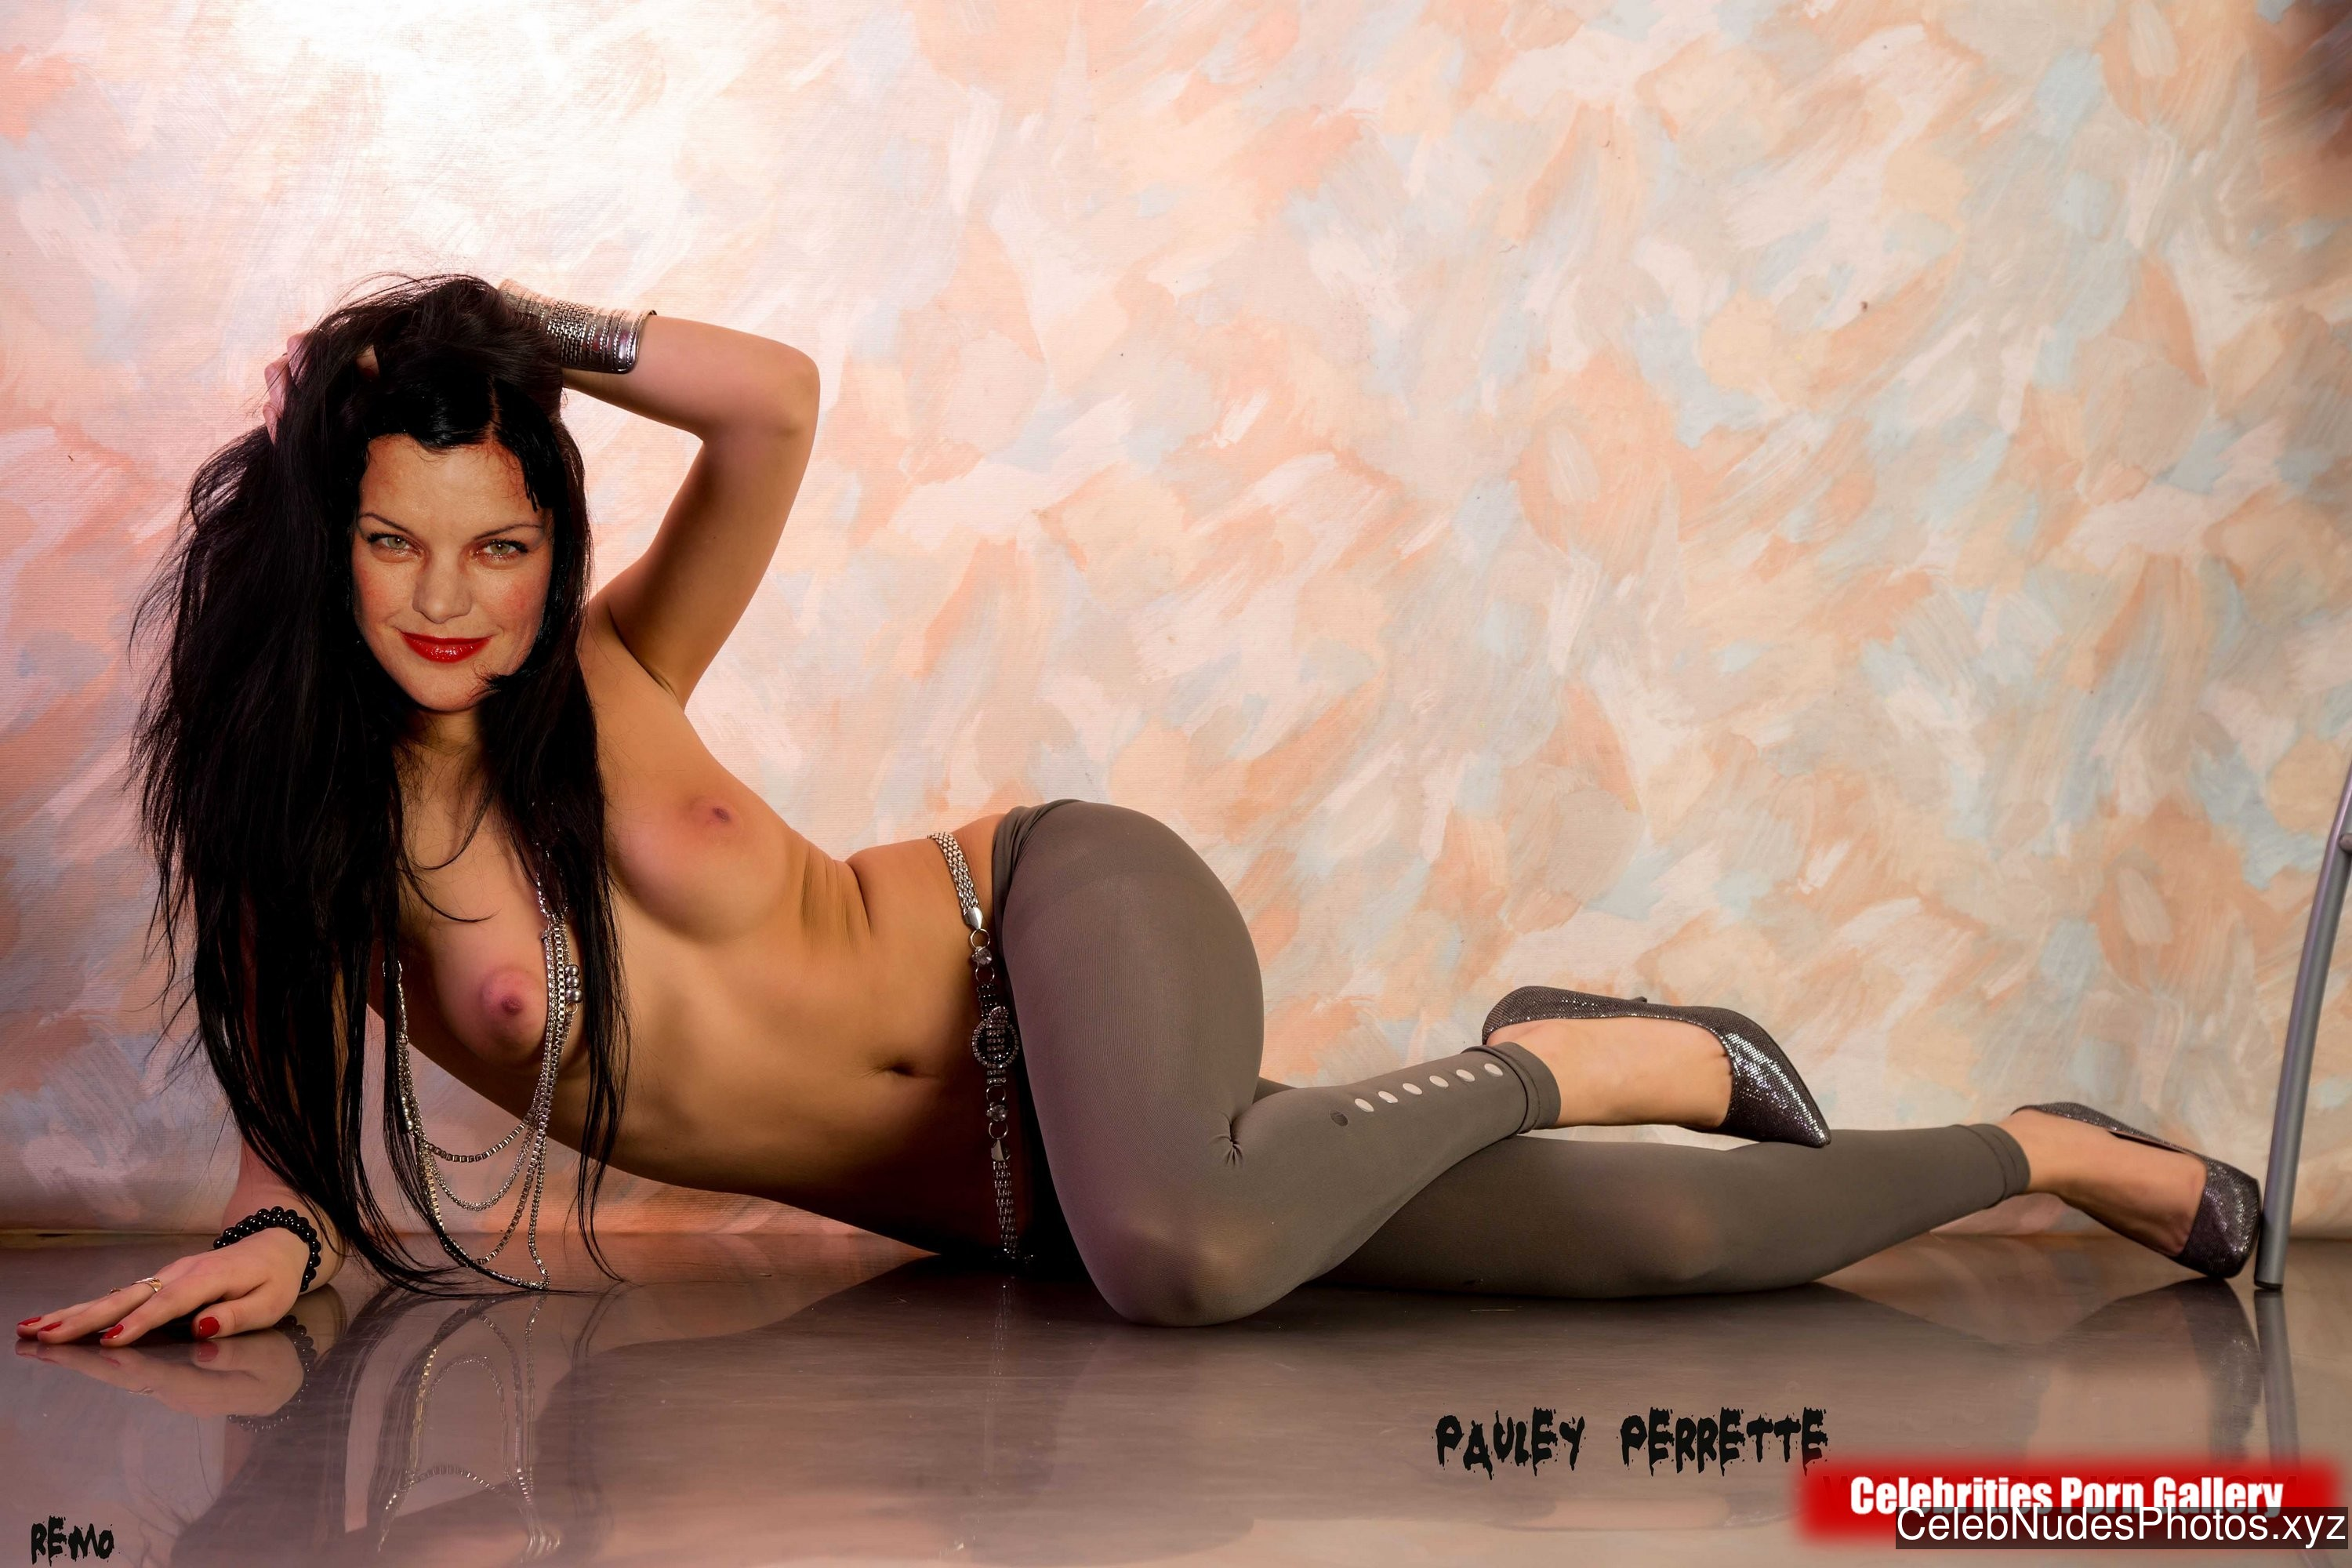 pauley perrette naked photos